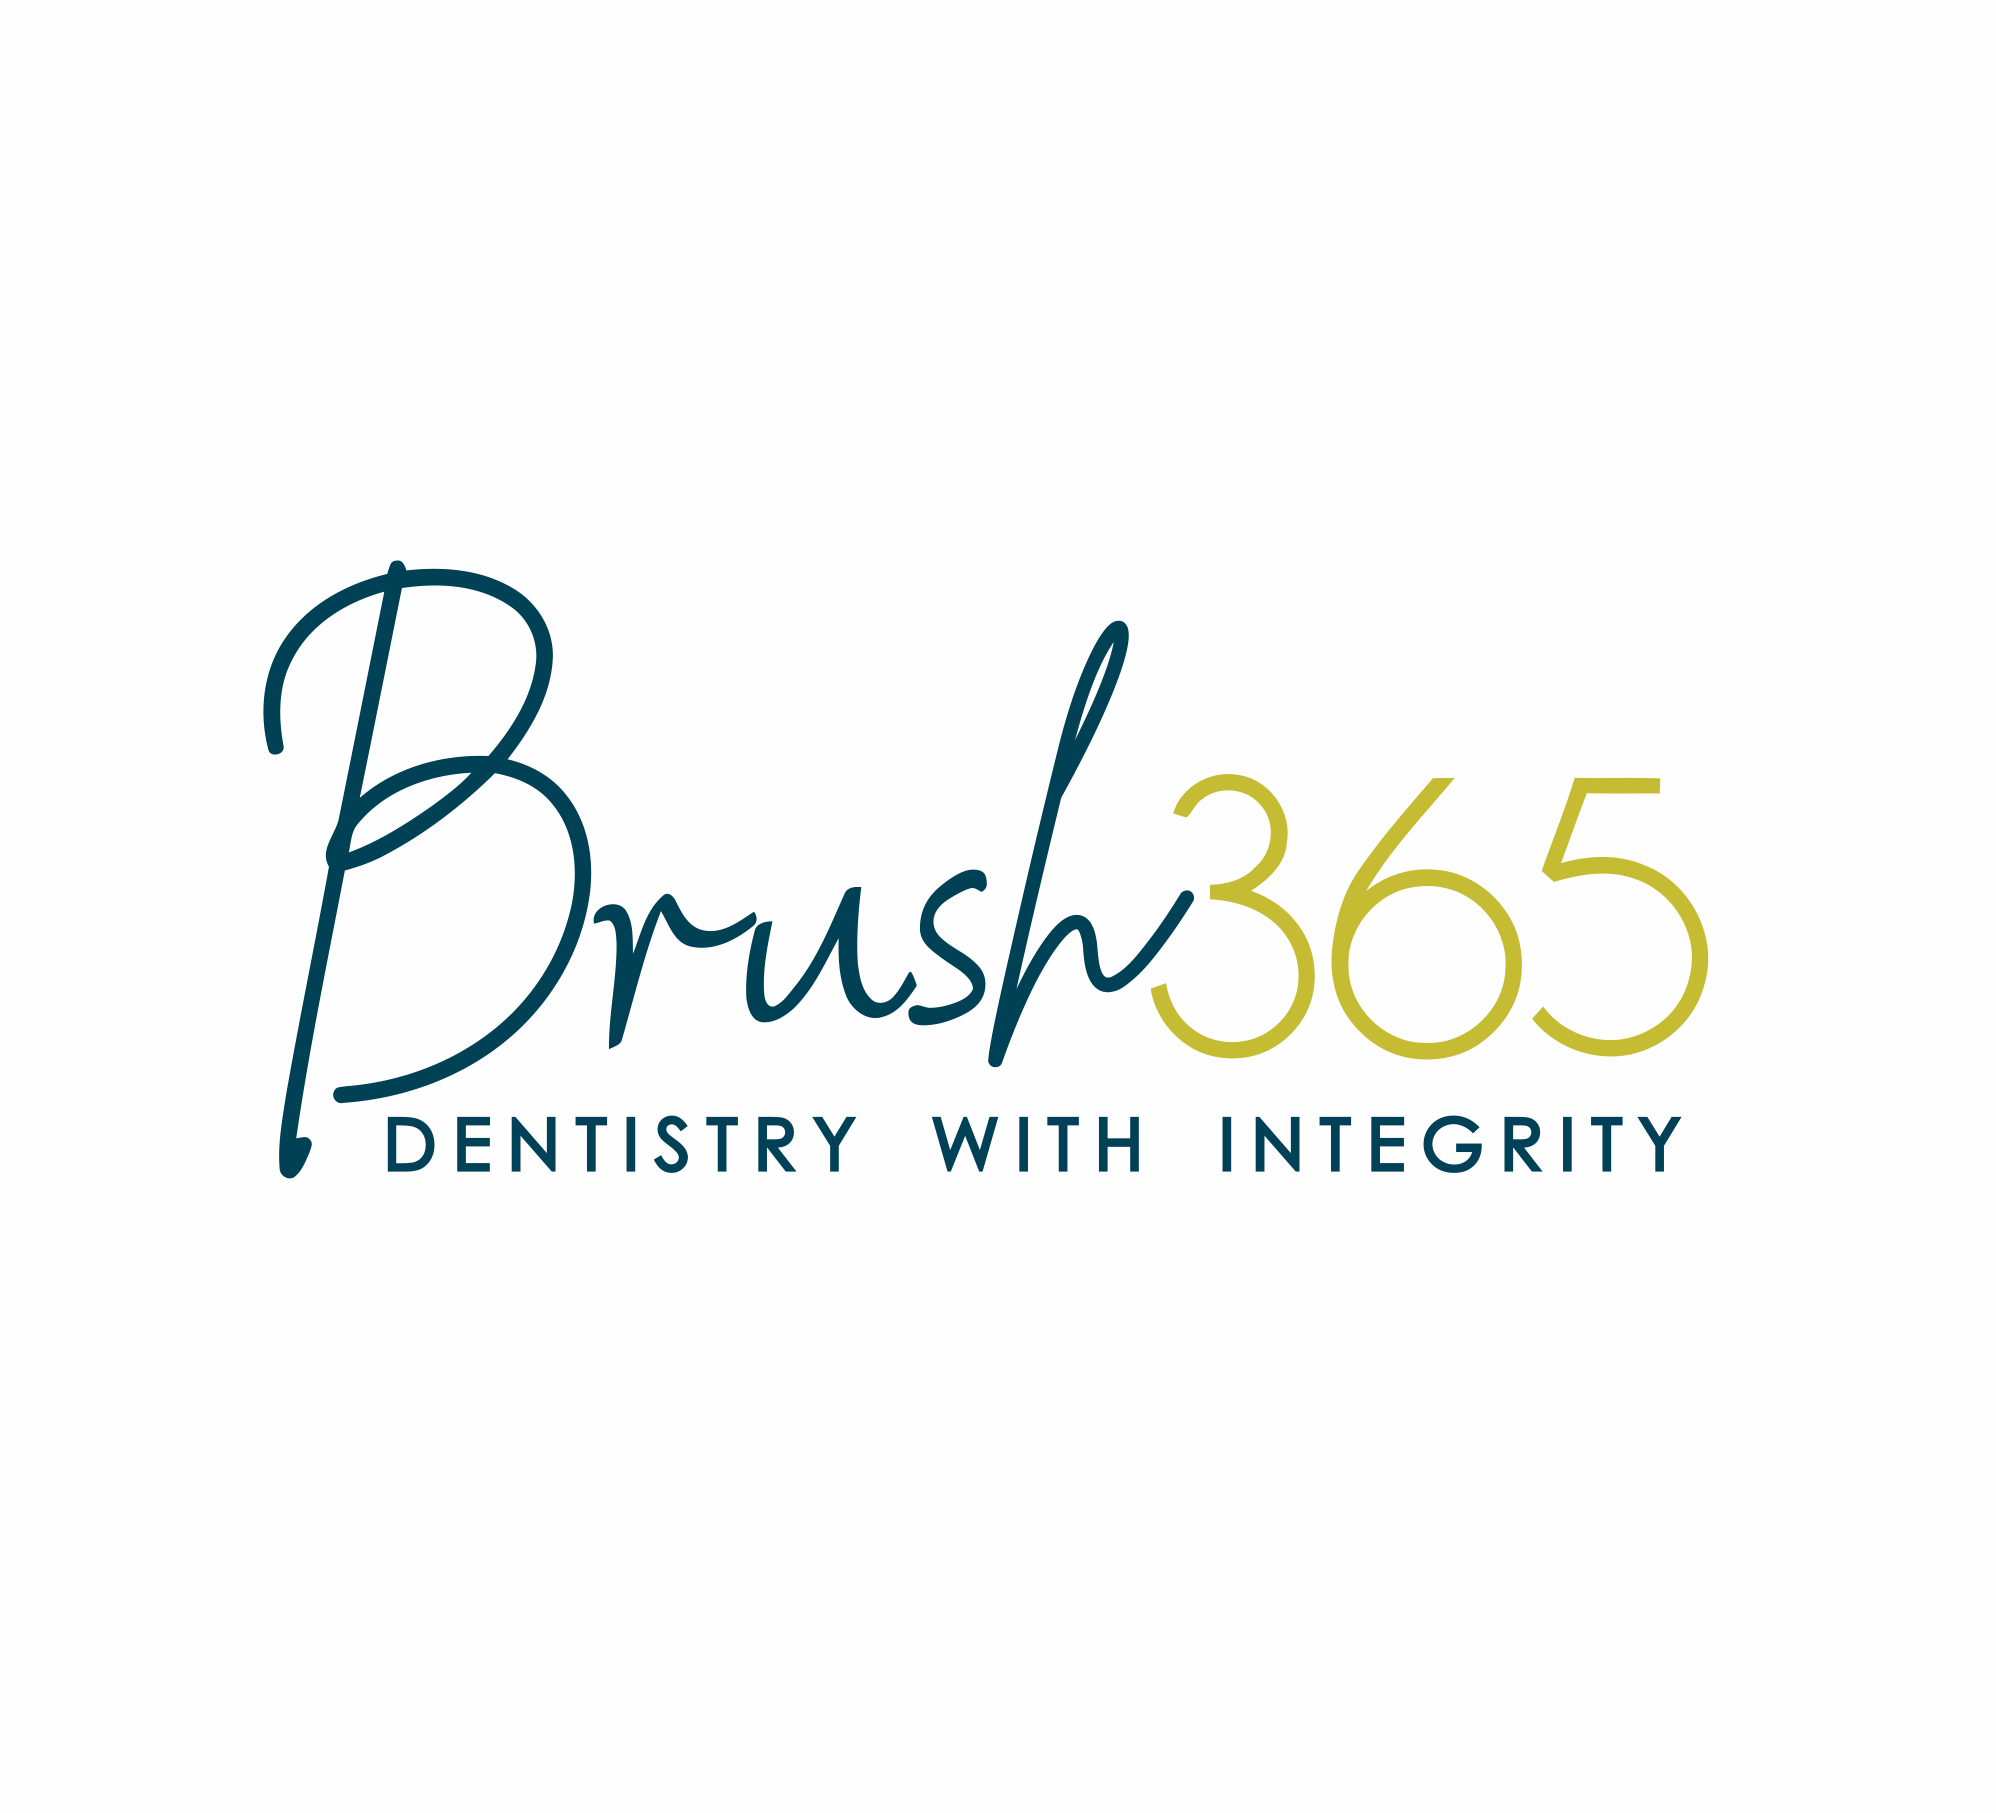 Fast growing dental office needs a rebrand!